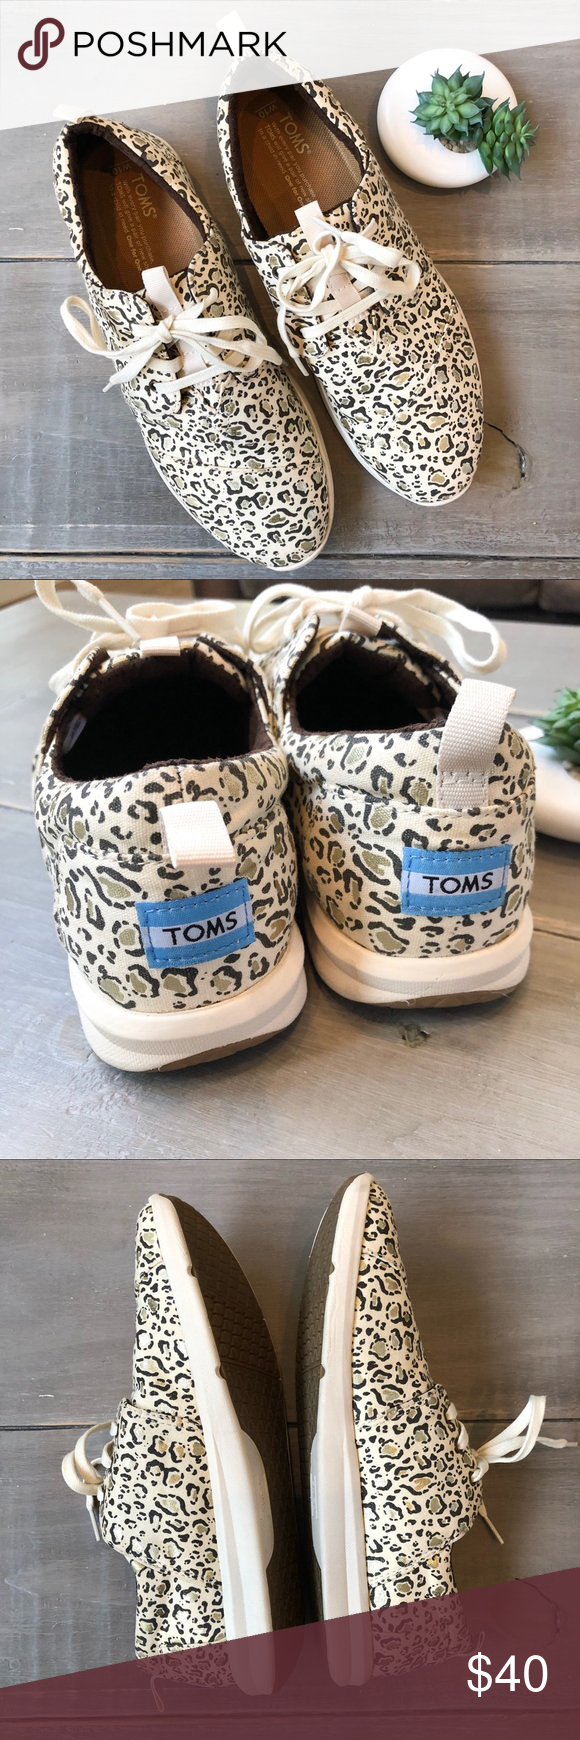 Toms Cheetah Print Sneakers (With images) Print sneakers